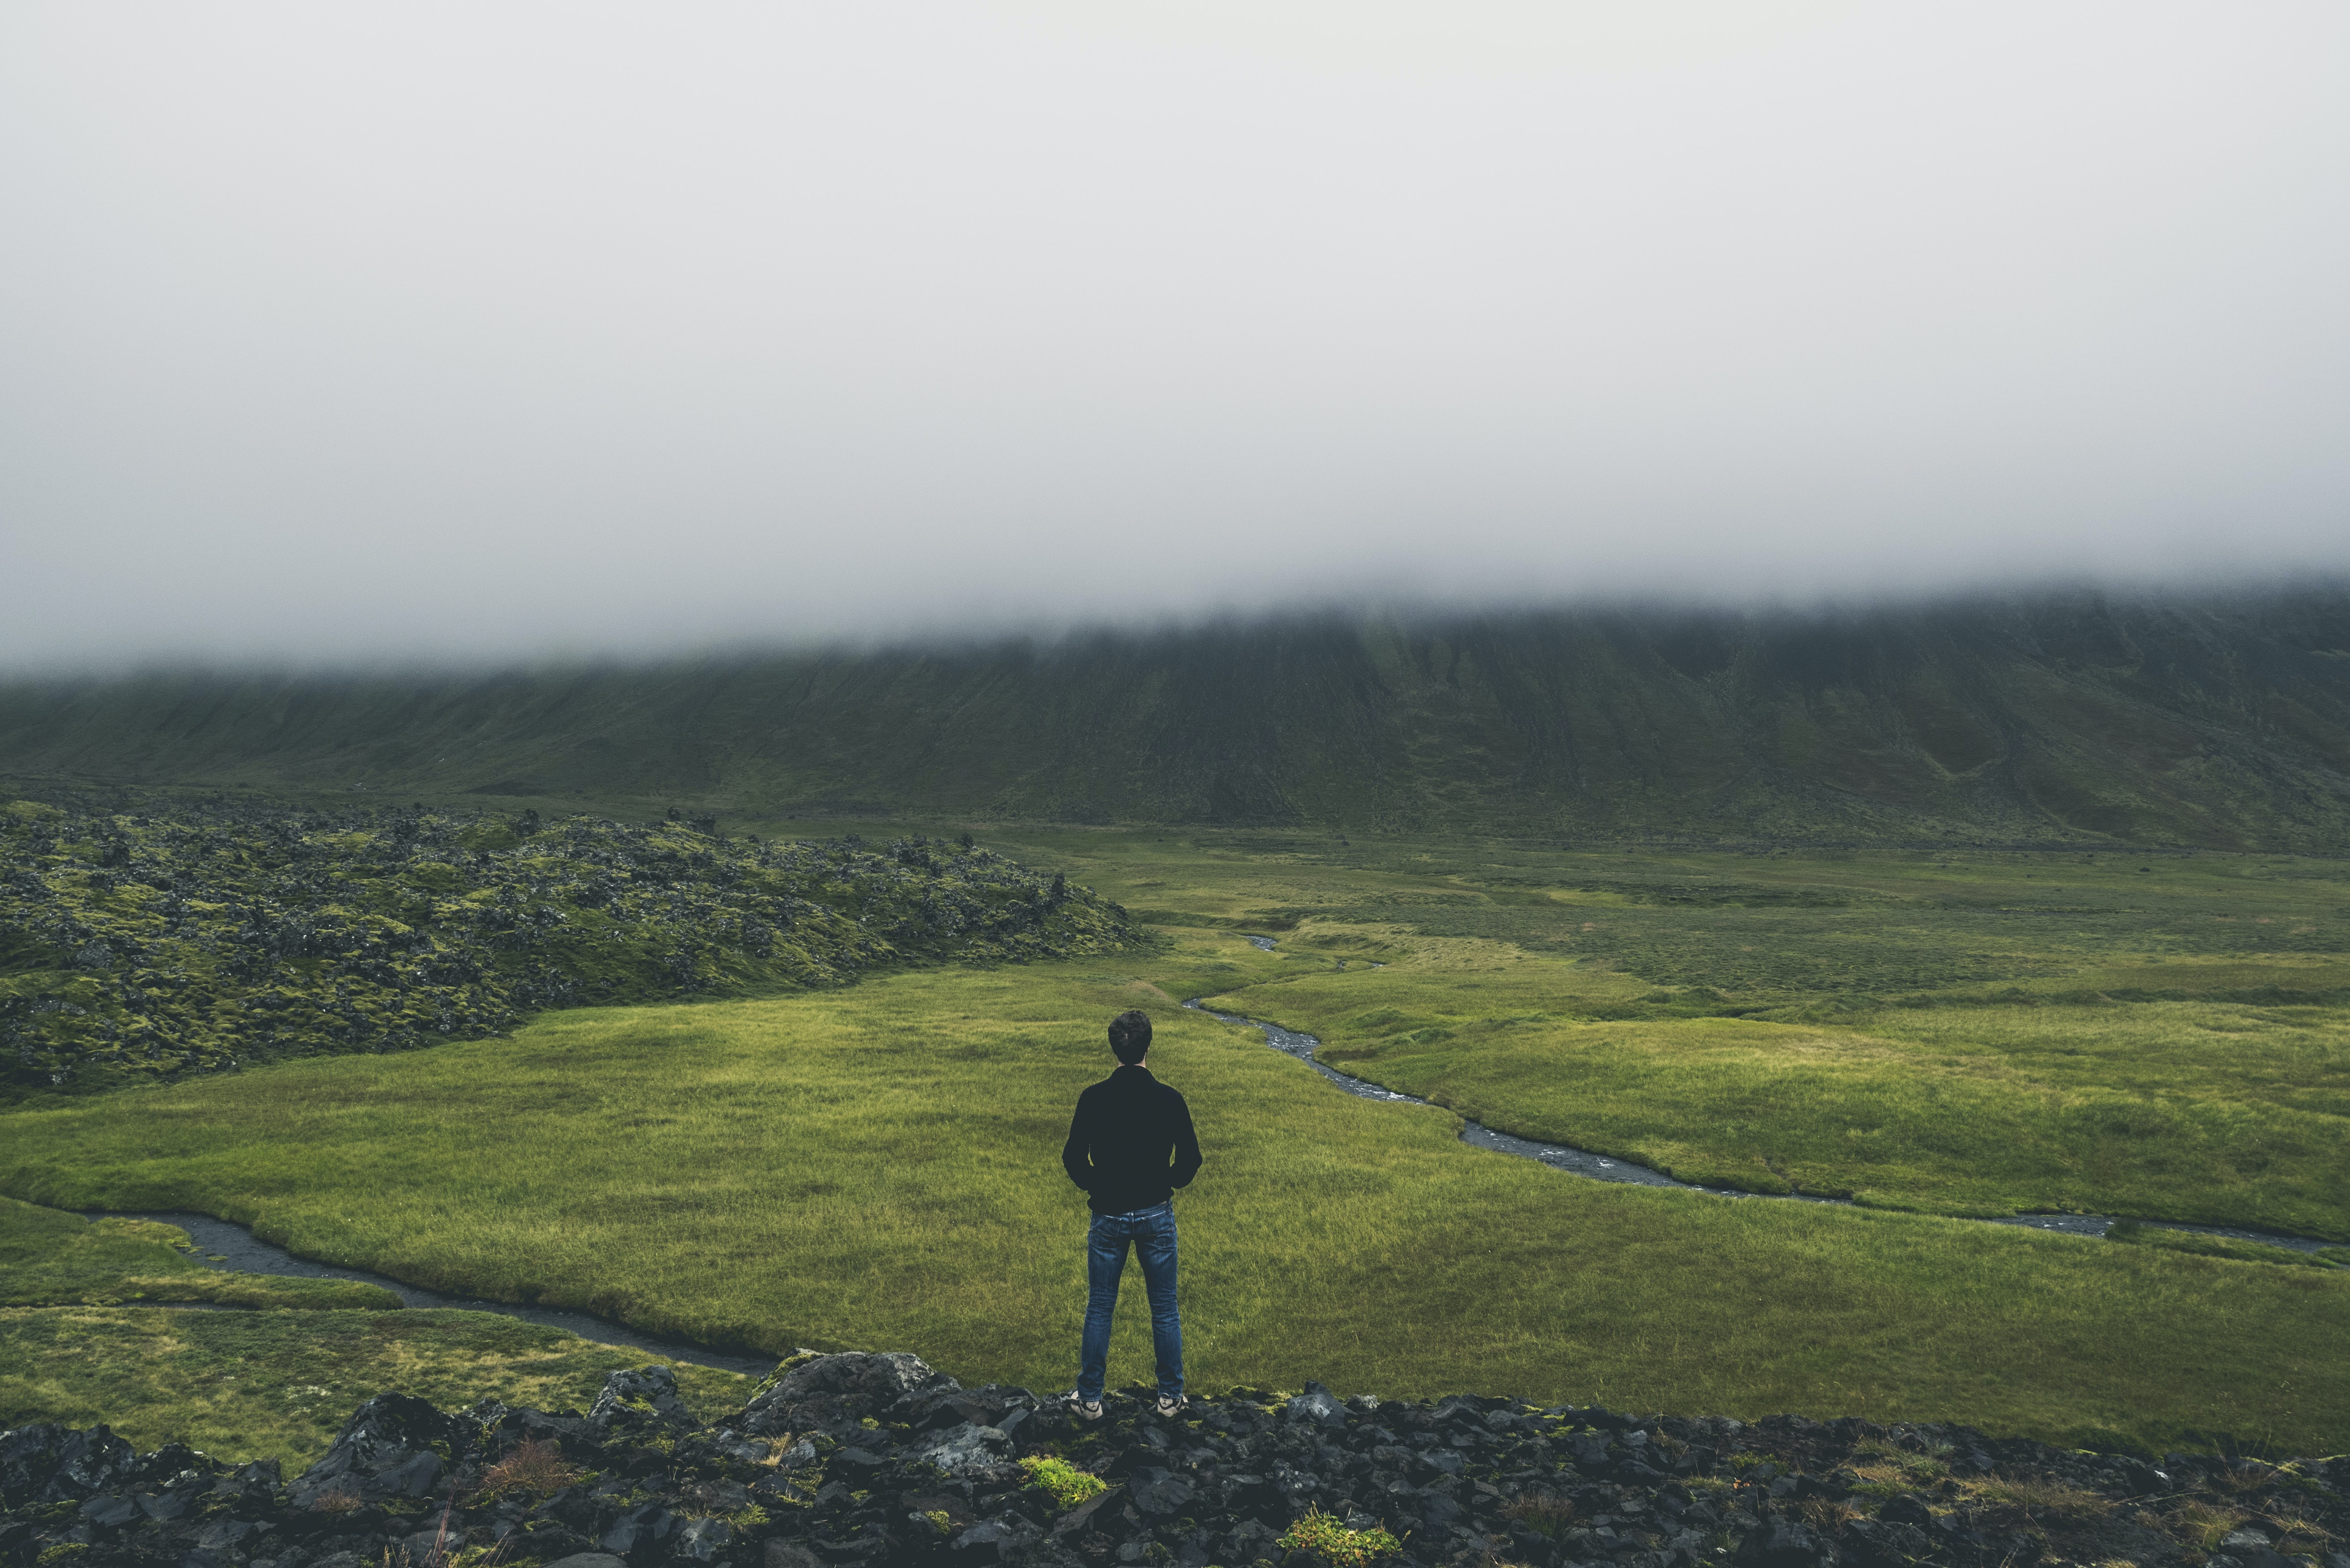 Person stands on a rocky trail in a grassy pasture near the mountains